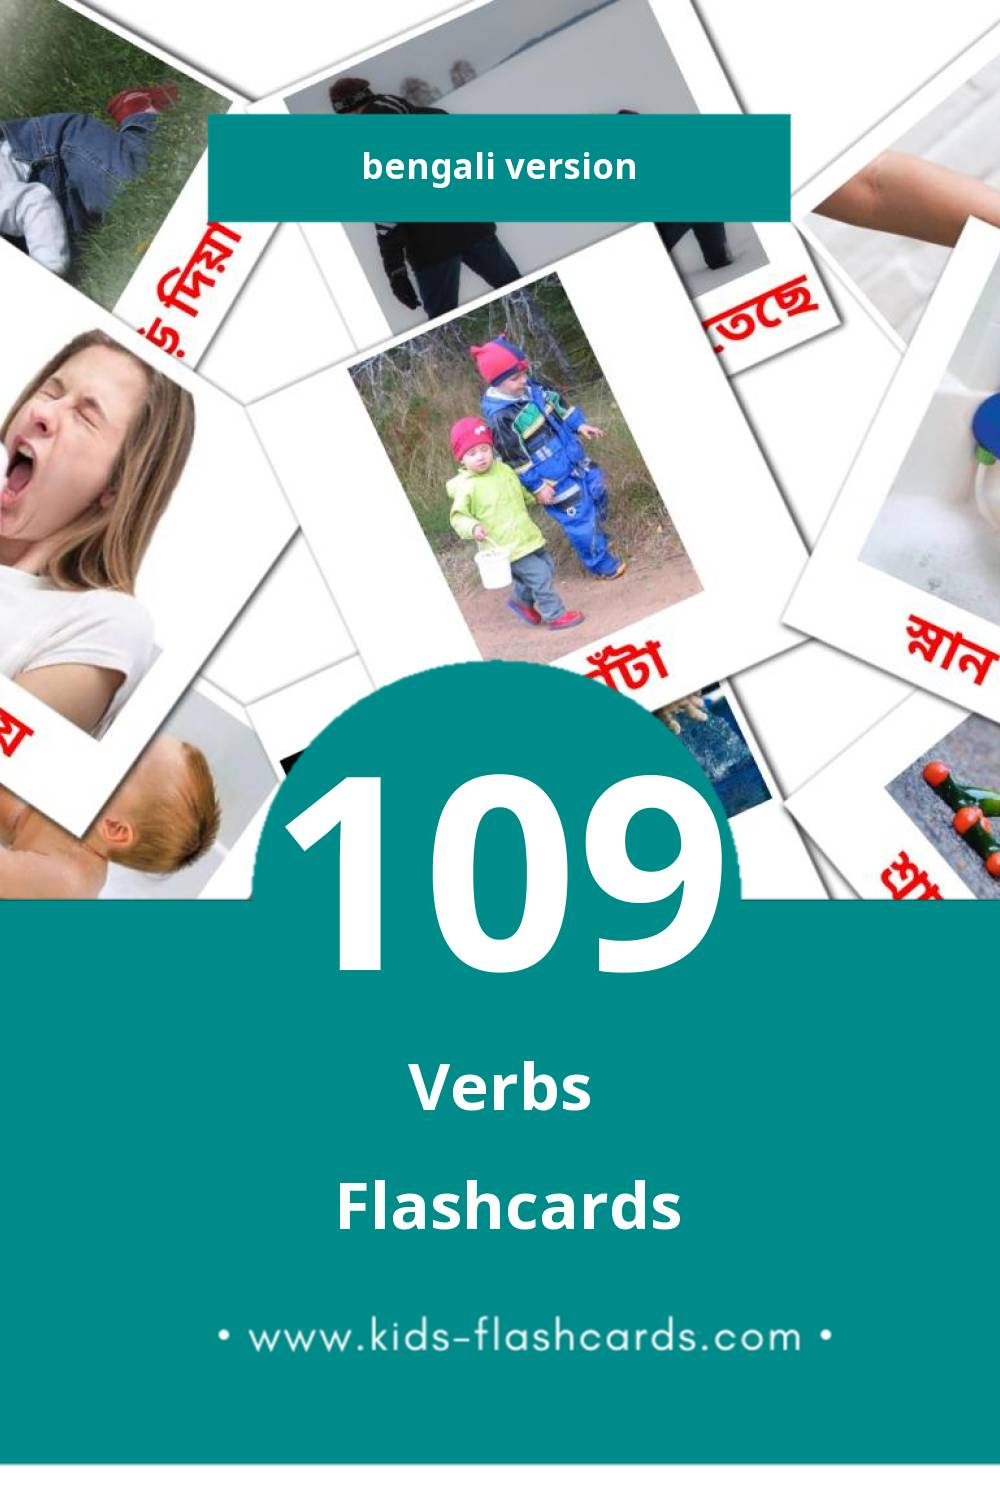 Visual ক্রিয়াপদ Flashcards for Toddlers (55 cards in Bengali)